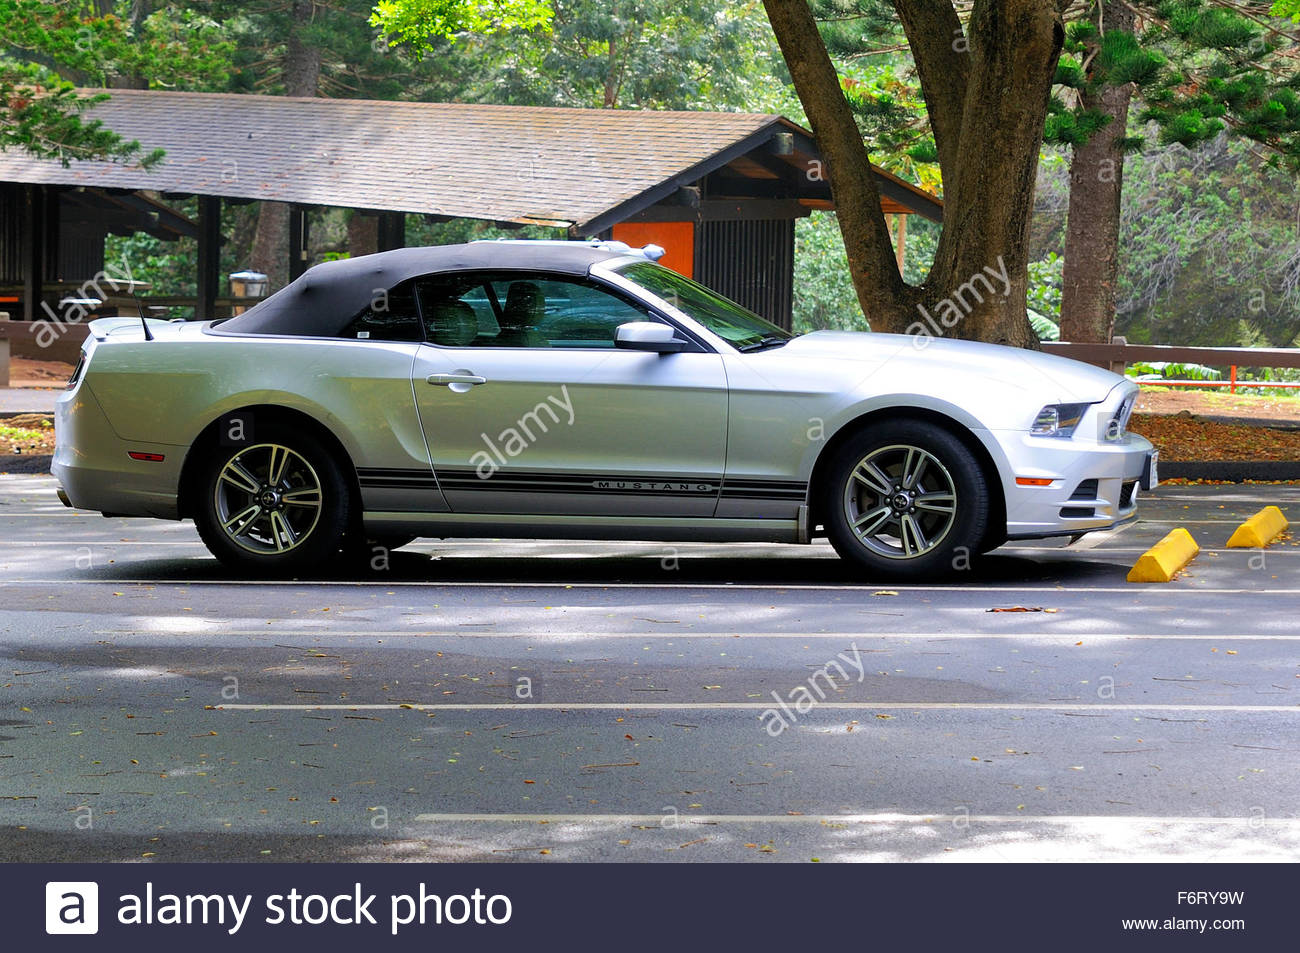 Convertible Ford Mustang parked in the roads of the island of Maui, Hawaii - Stock Image